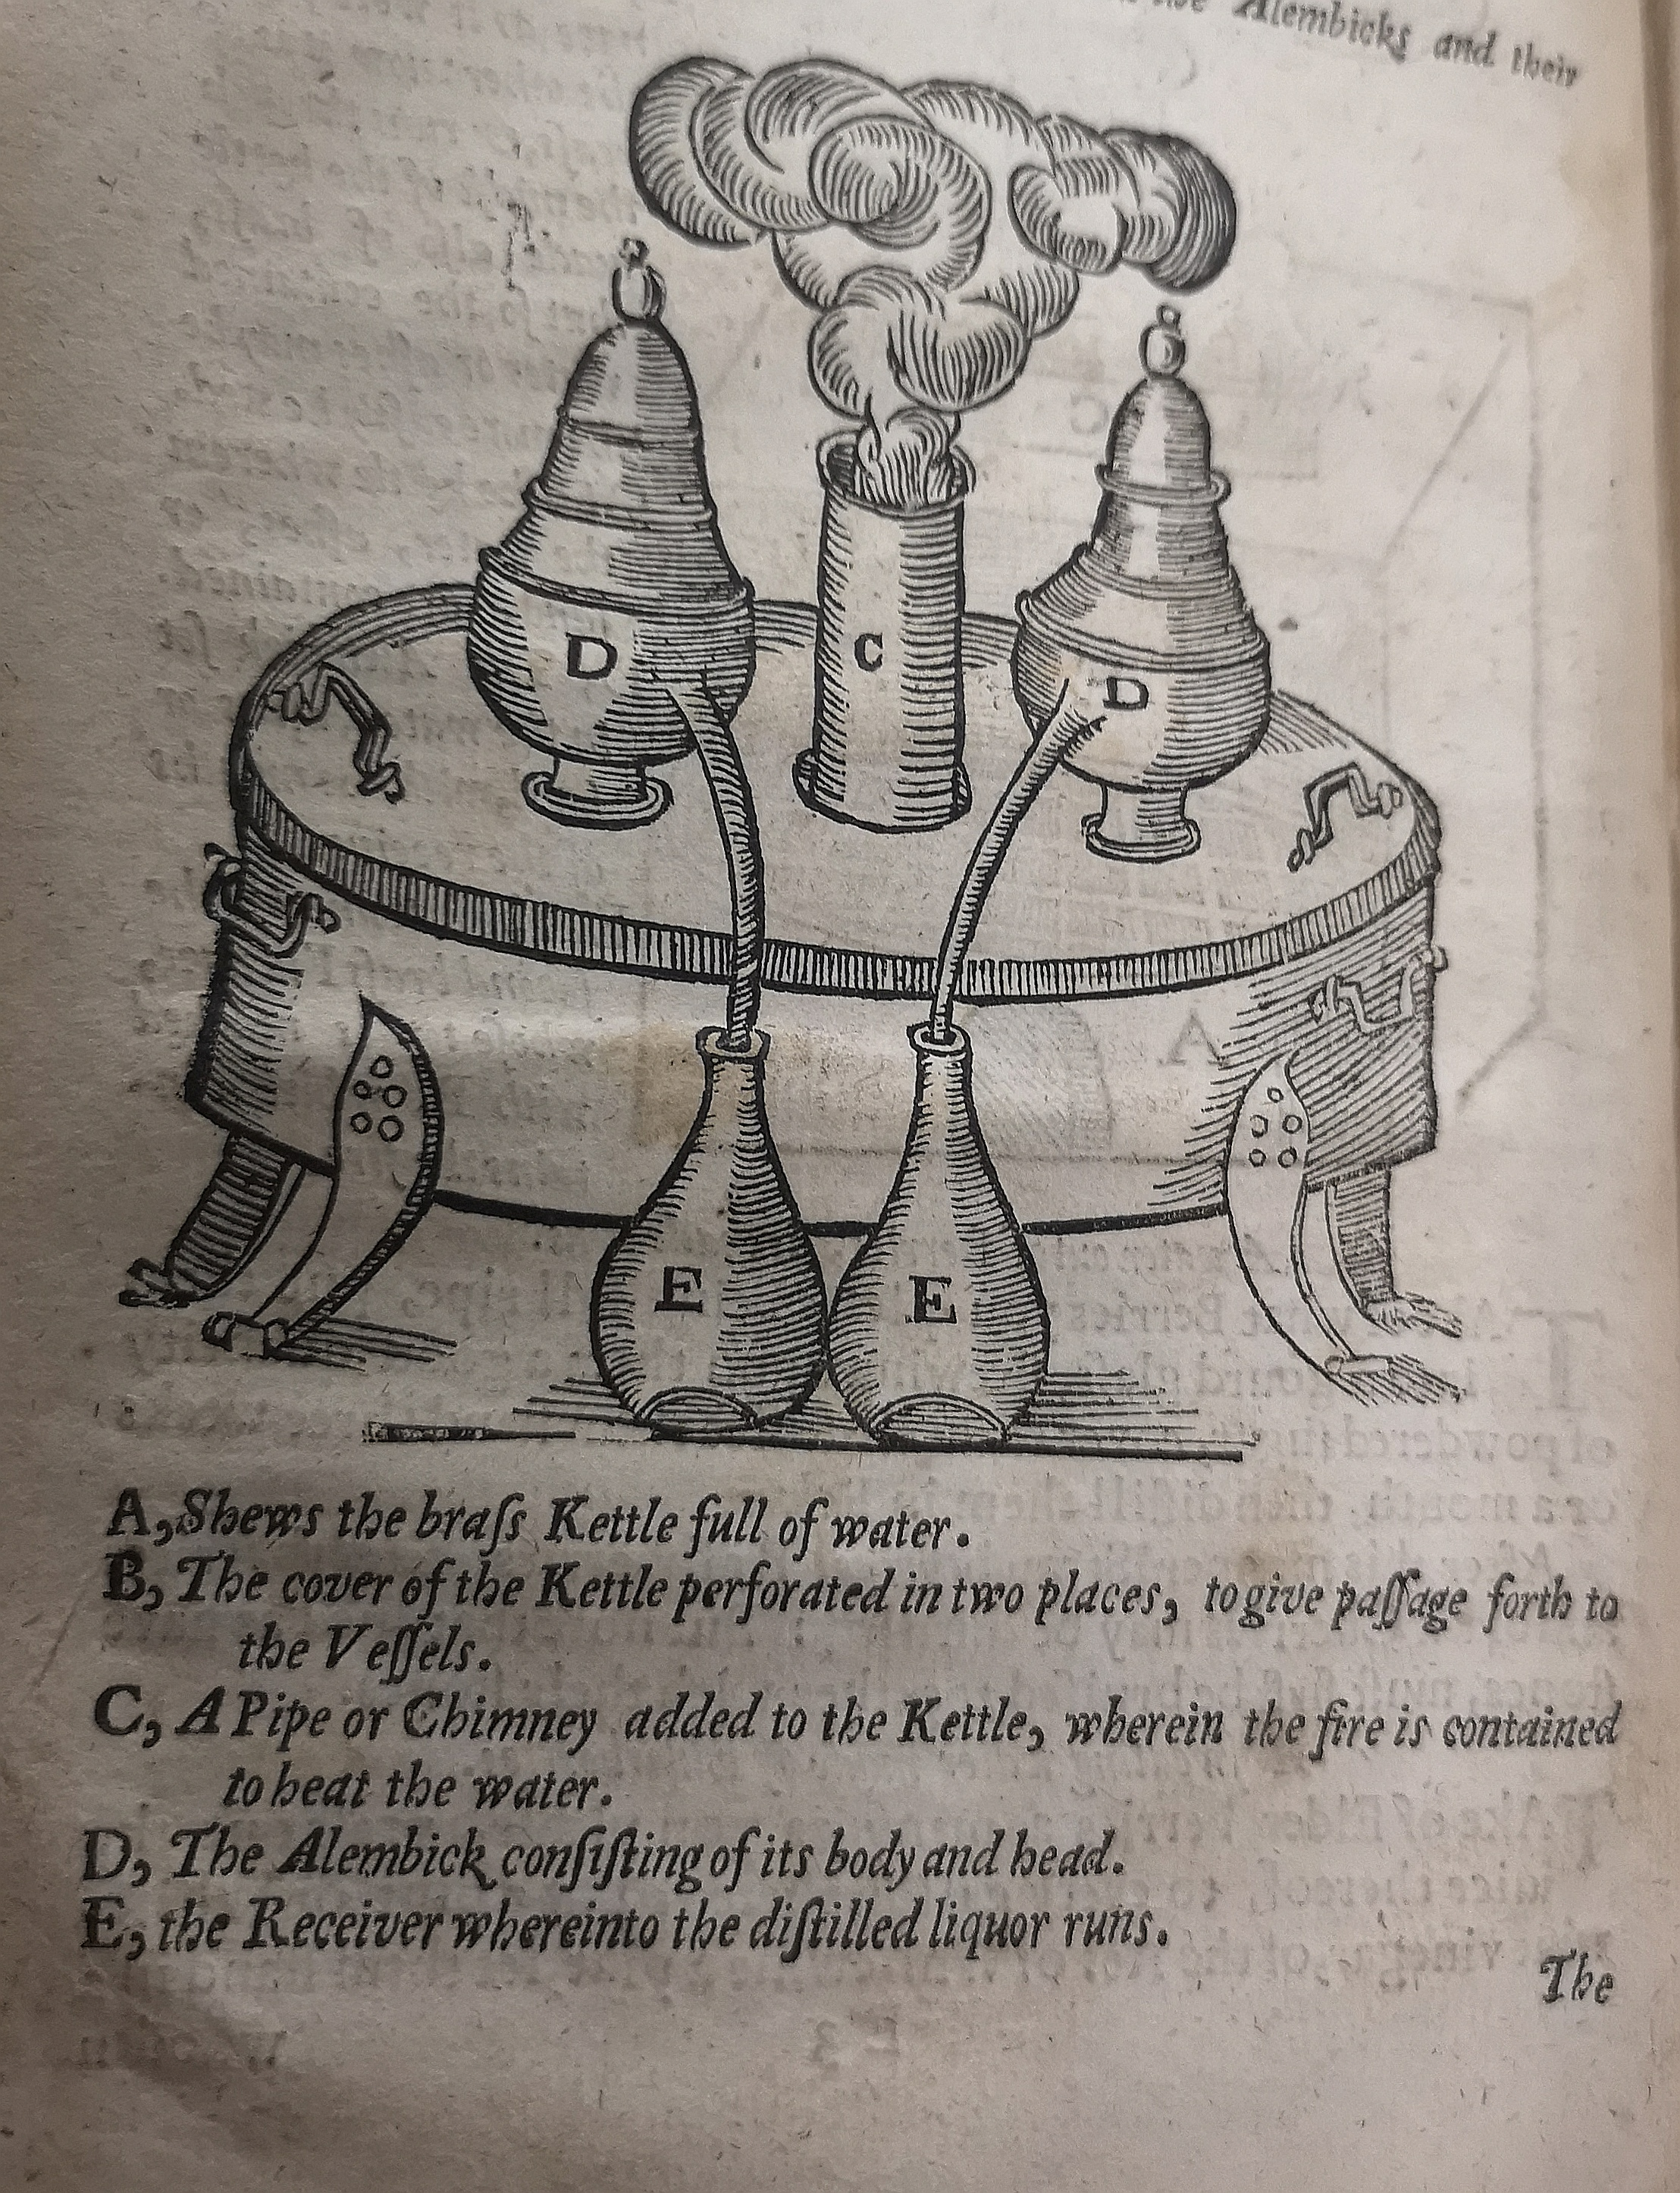 This was one method of distillation being utilised in 1653, which looks very similar to a modern day distillation technique! On a large drum sit 2 identical vessels, and in between them is a ventilation shaft allowing smoke to escape. The two vessels on the drum are connected by long thin spouts to two conical flasks,designed to receive the run off liquor.